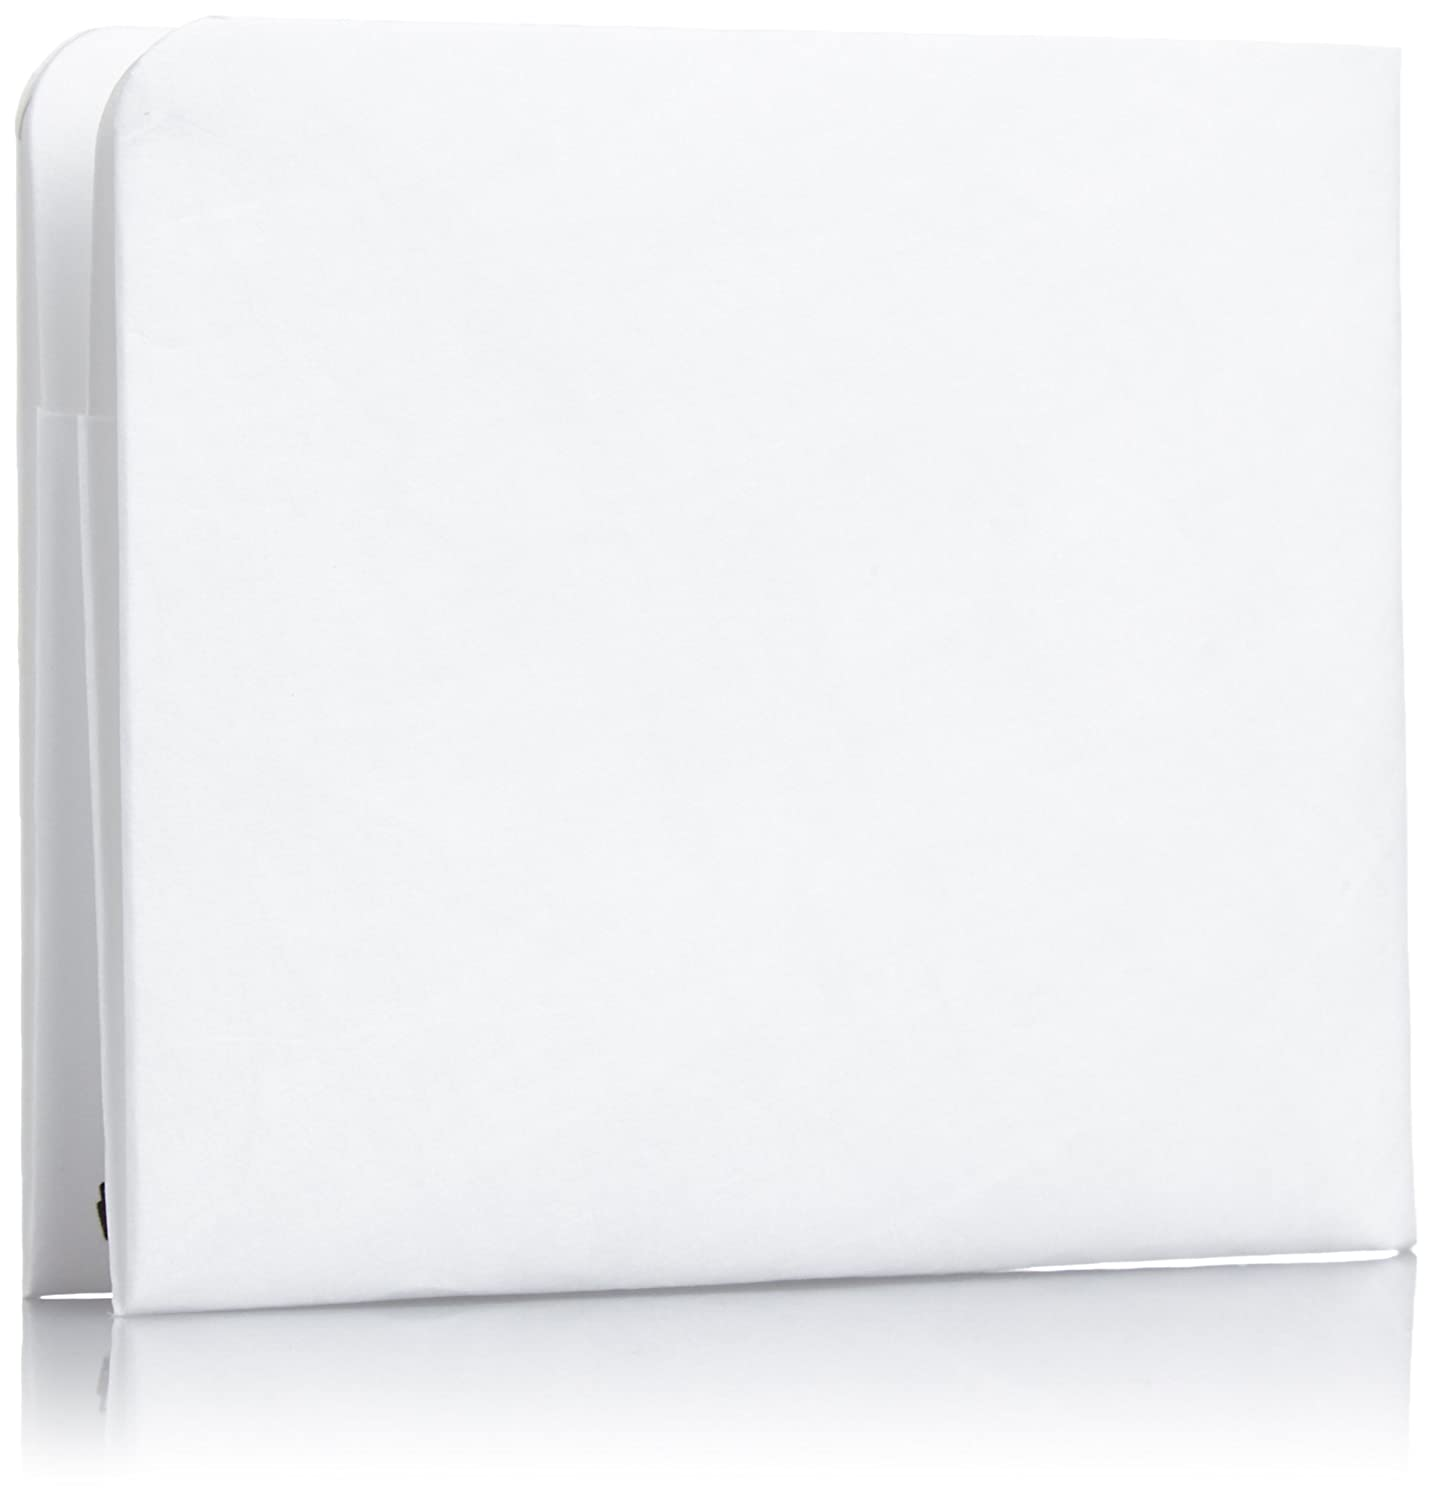 Amazon.com: White DIY Paperwallet: Clothing